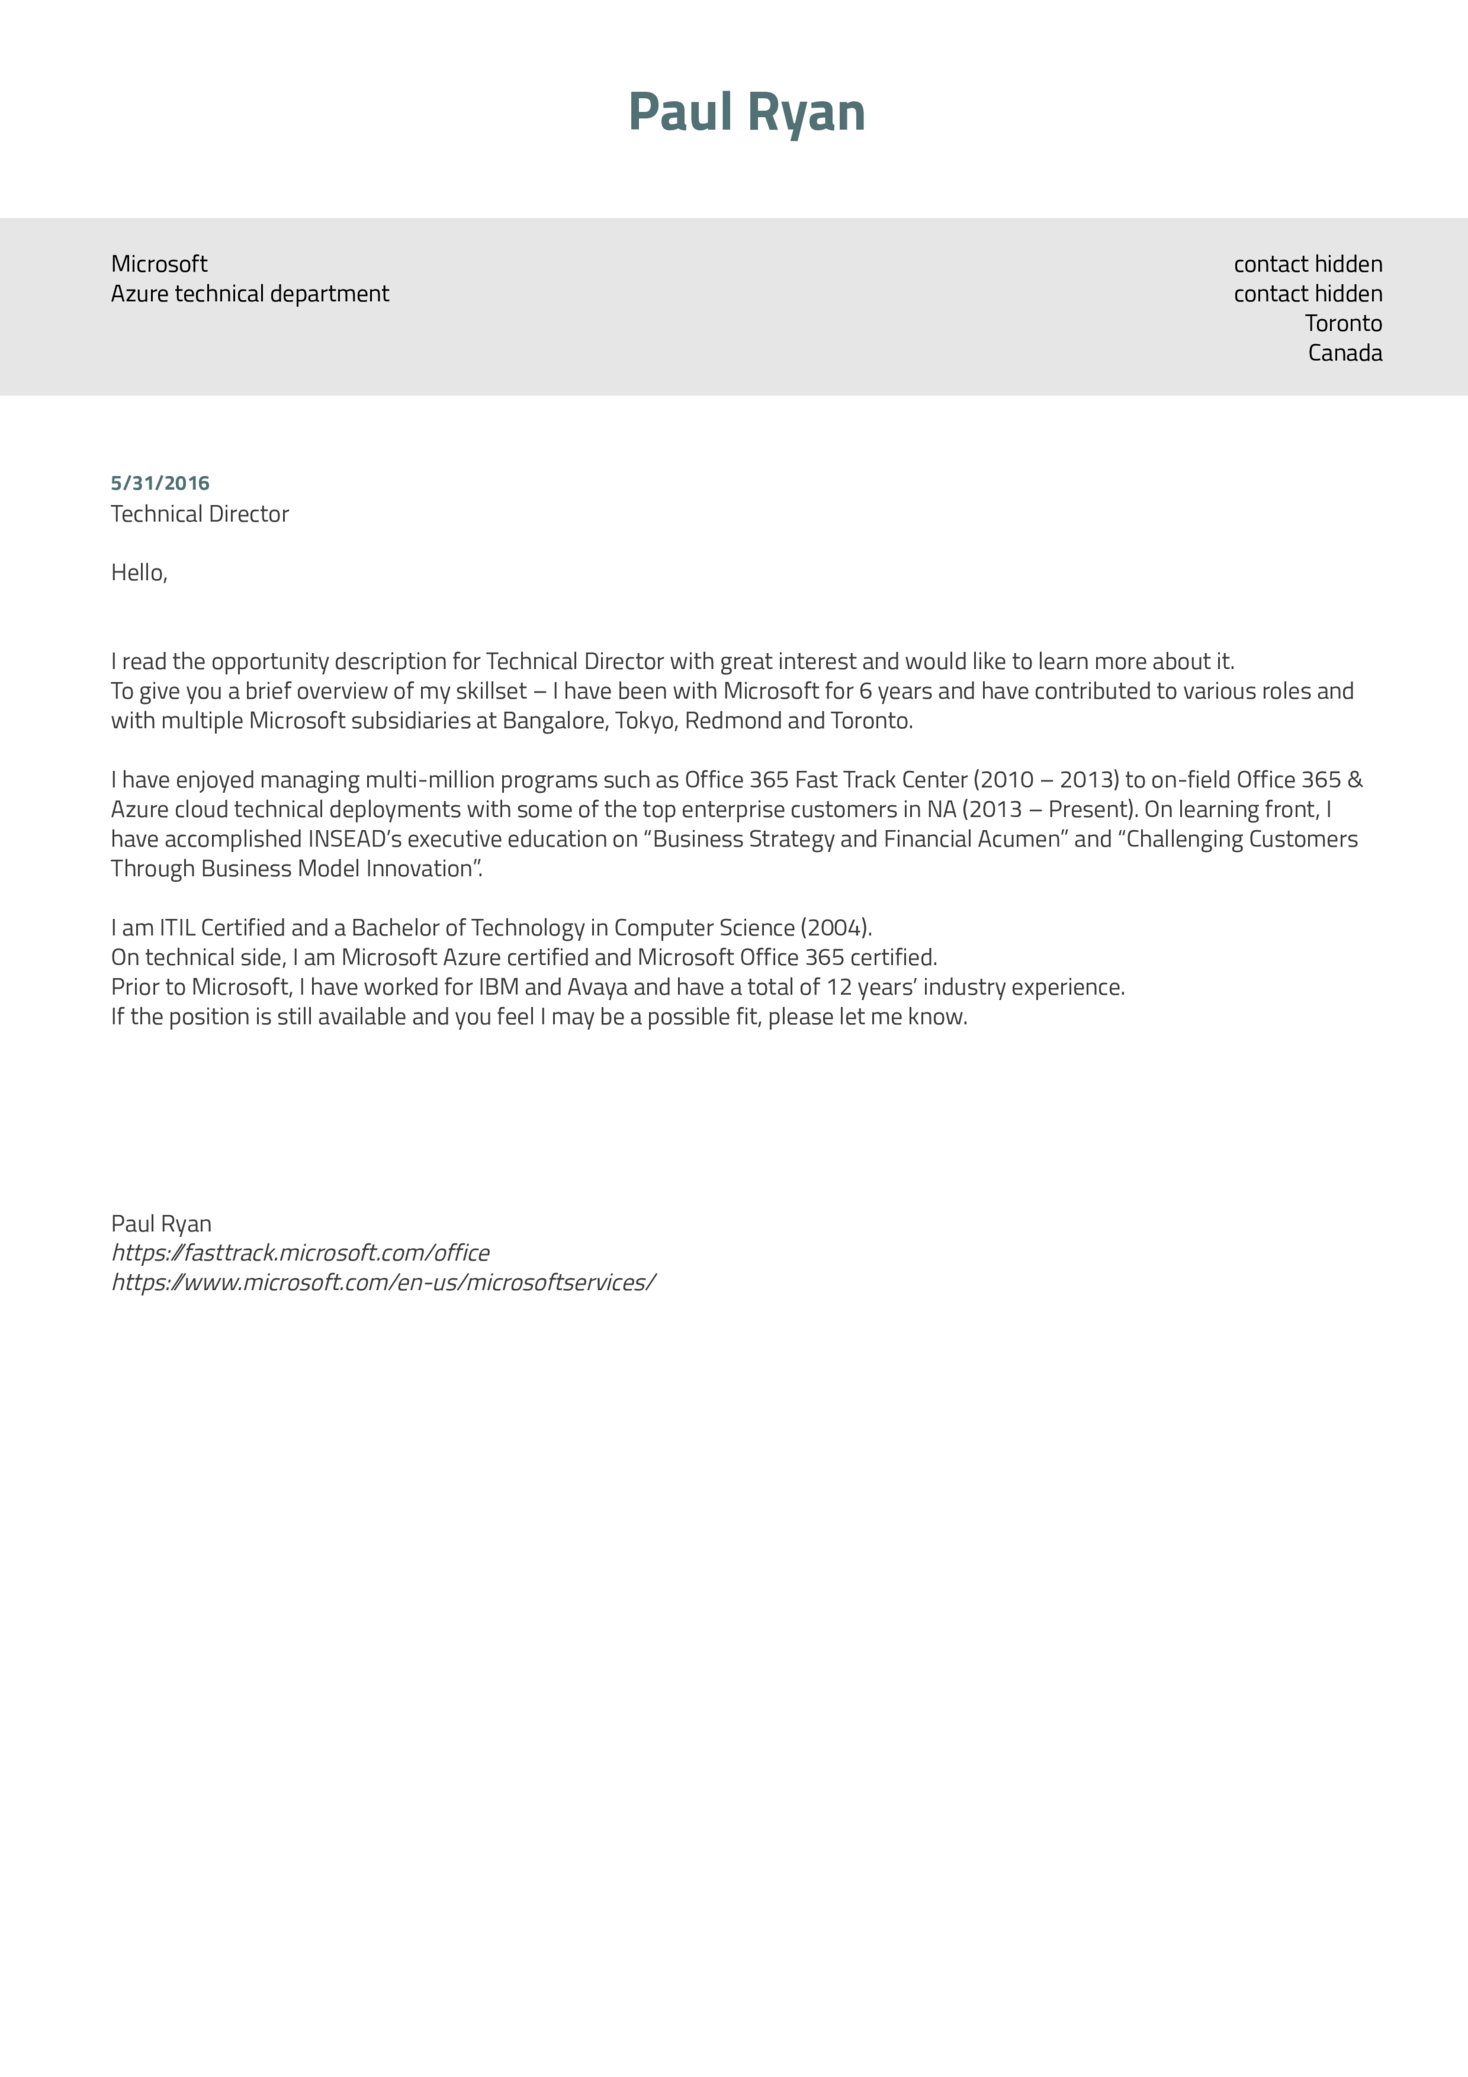 cover letter examples by real people  microsoft technical director cover letter sample